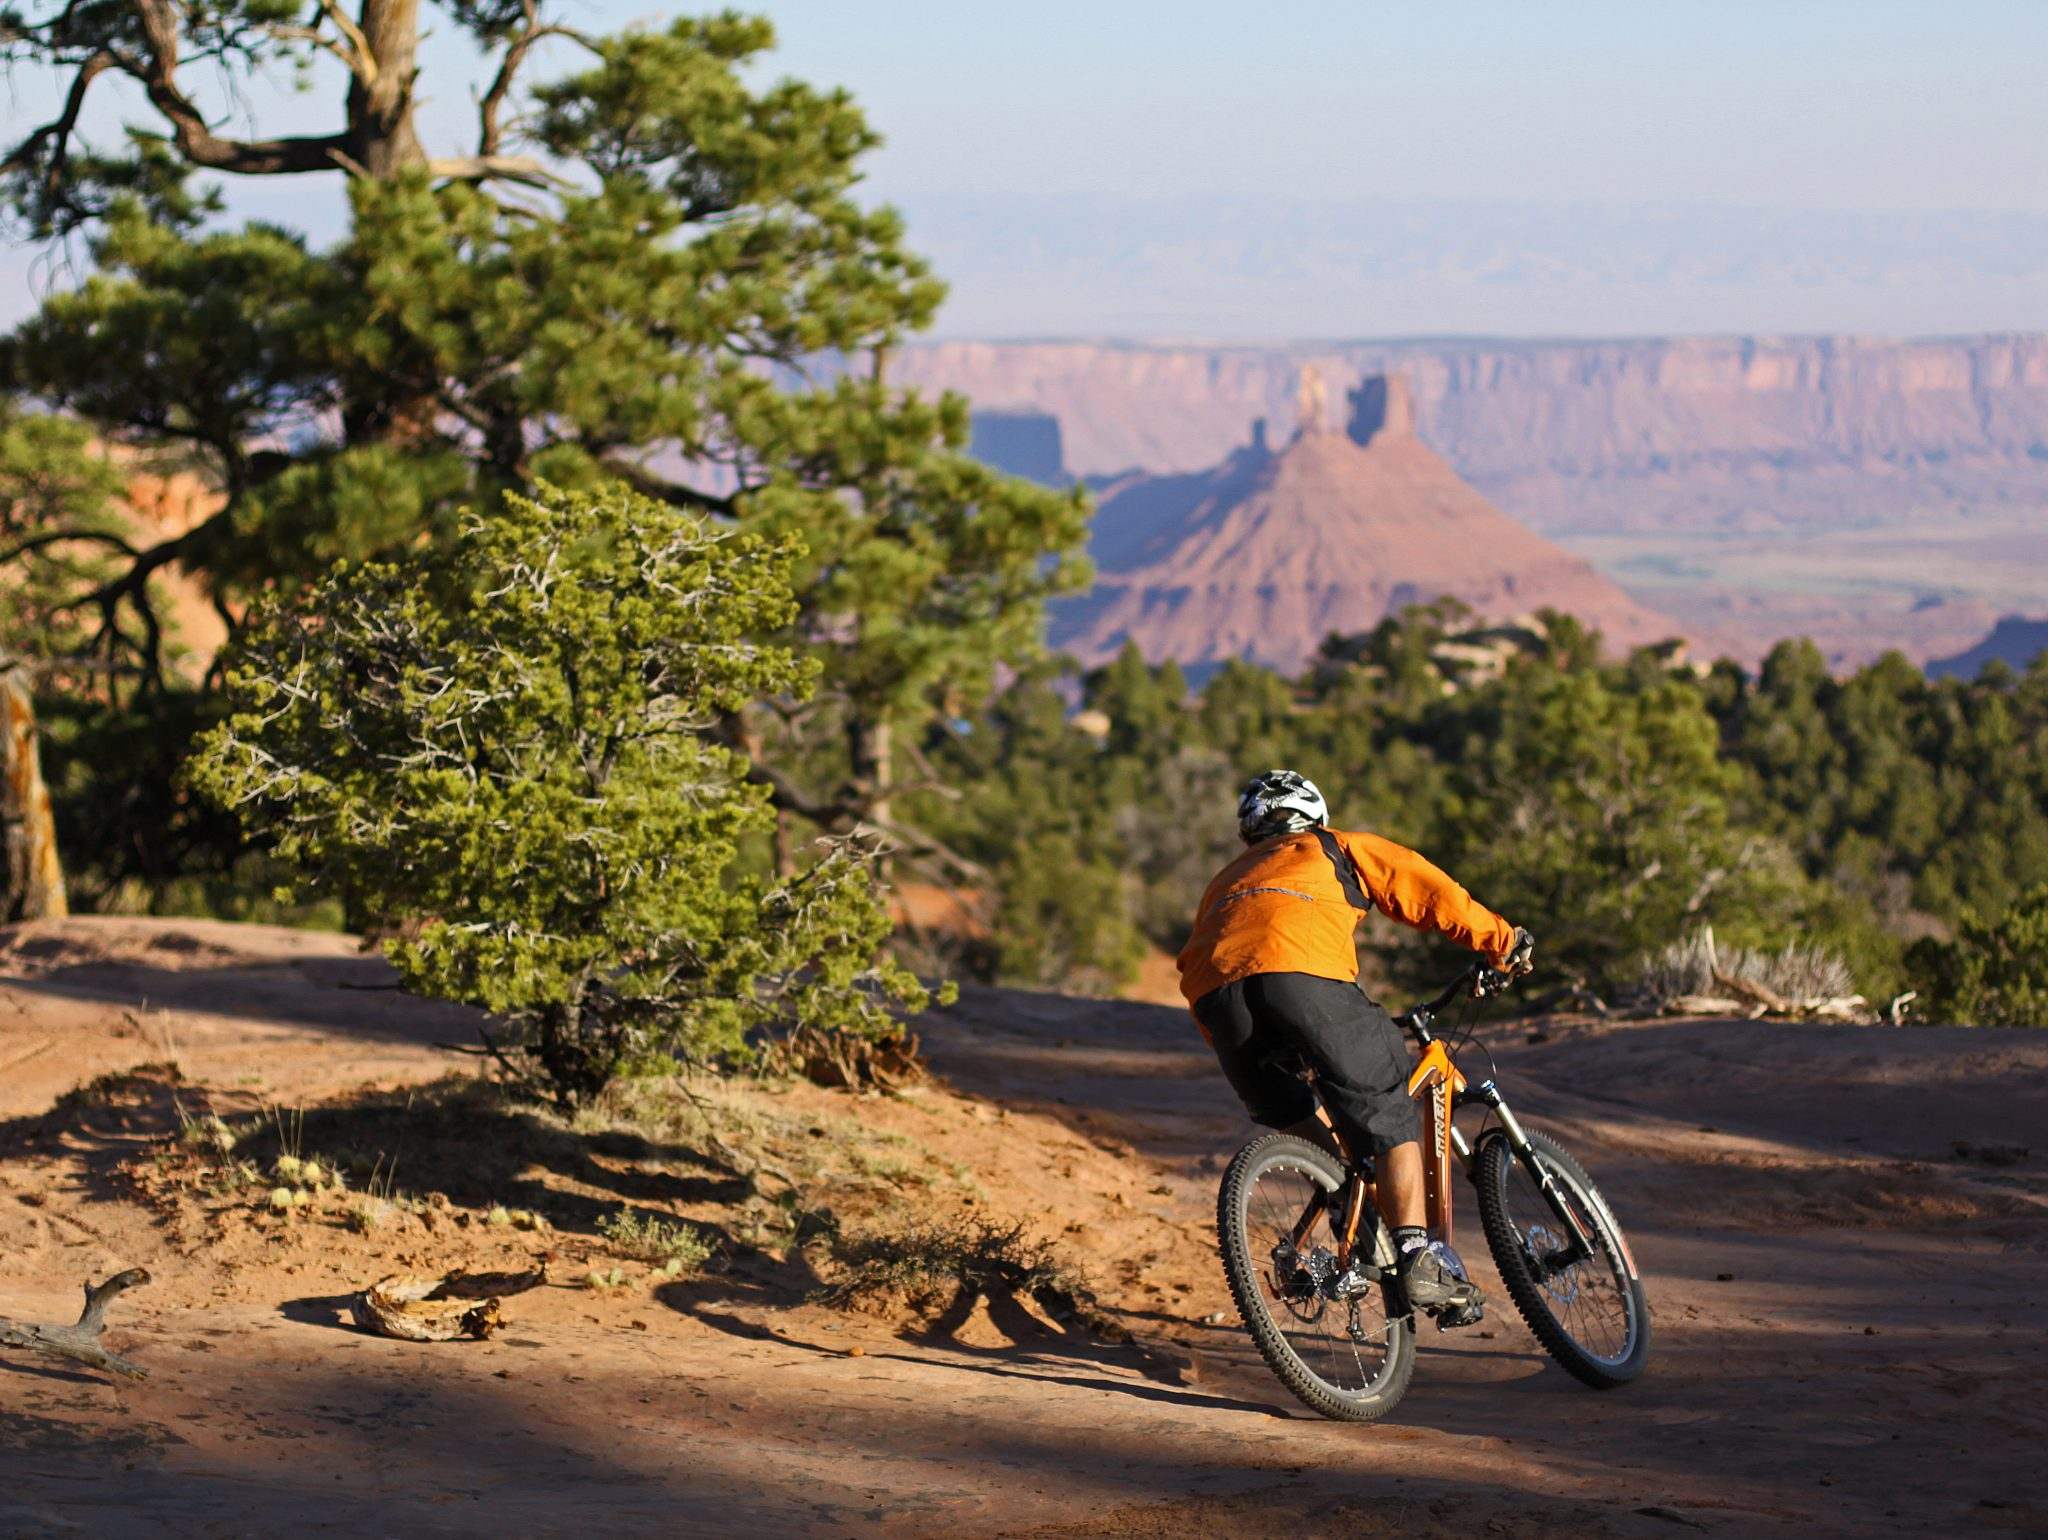 Mountain biker leans into a fast turn on the downhill slickrock section of the Porcupine Rim Trail, part of The Whole Enchilada